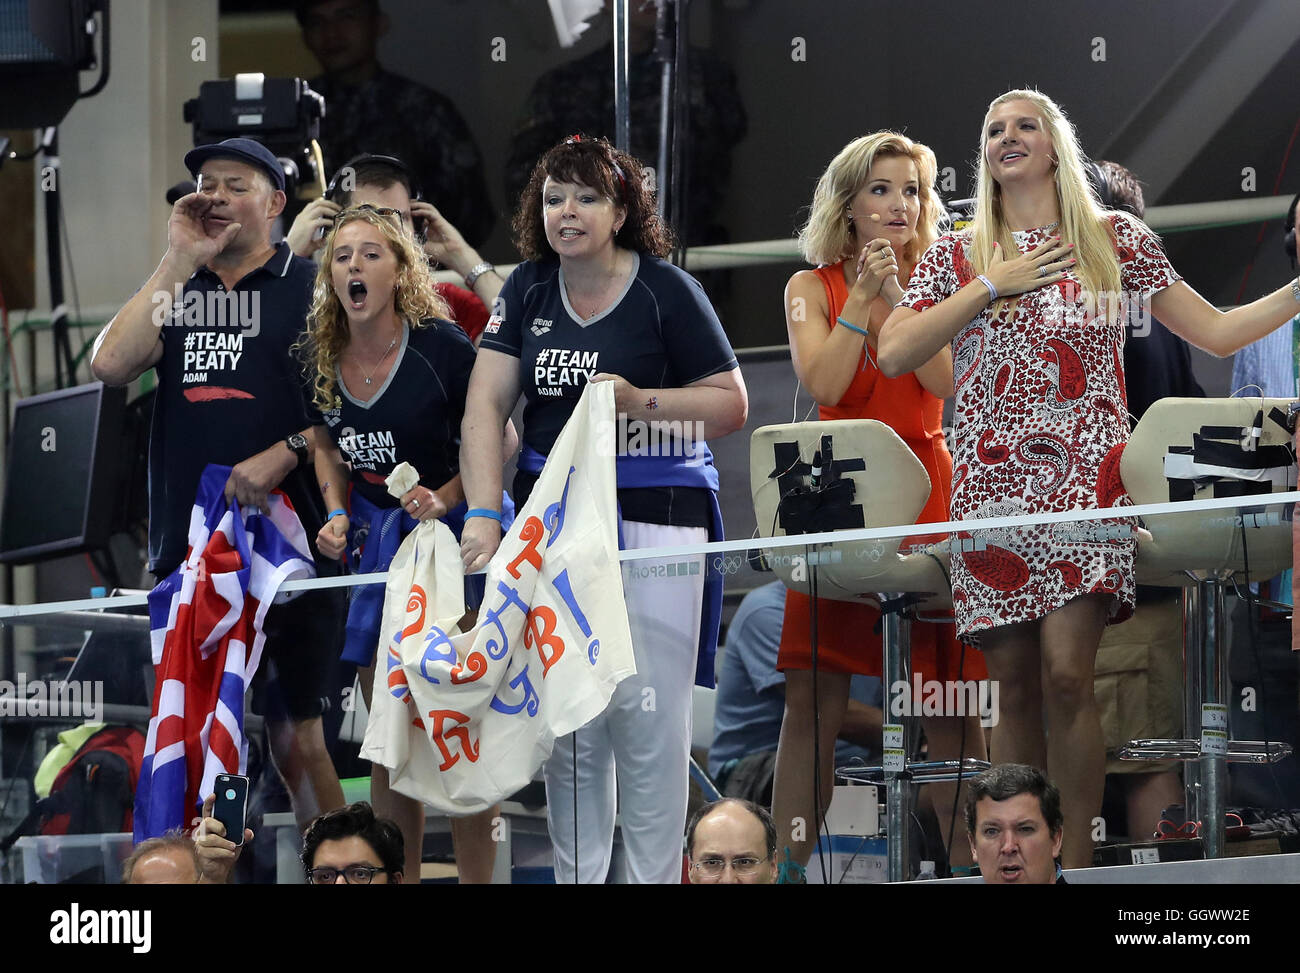 Mark and Caroline Peaty (left) with girlfriend Anna Zair in the BBC studio during the Men's 100m Final where - Stock Image